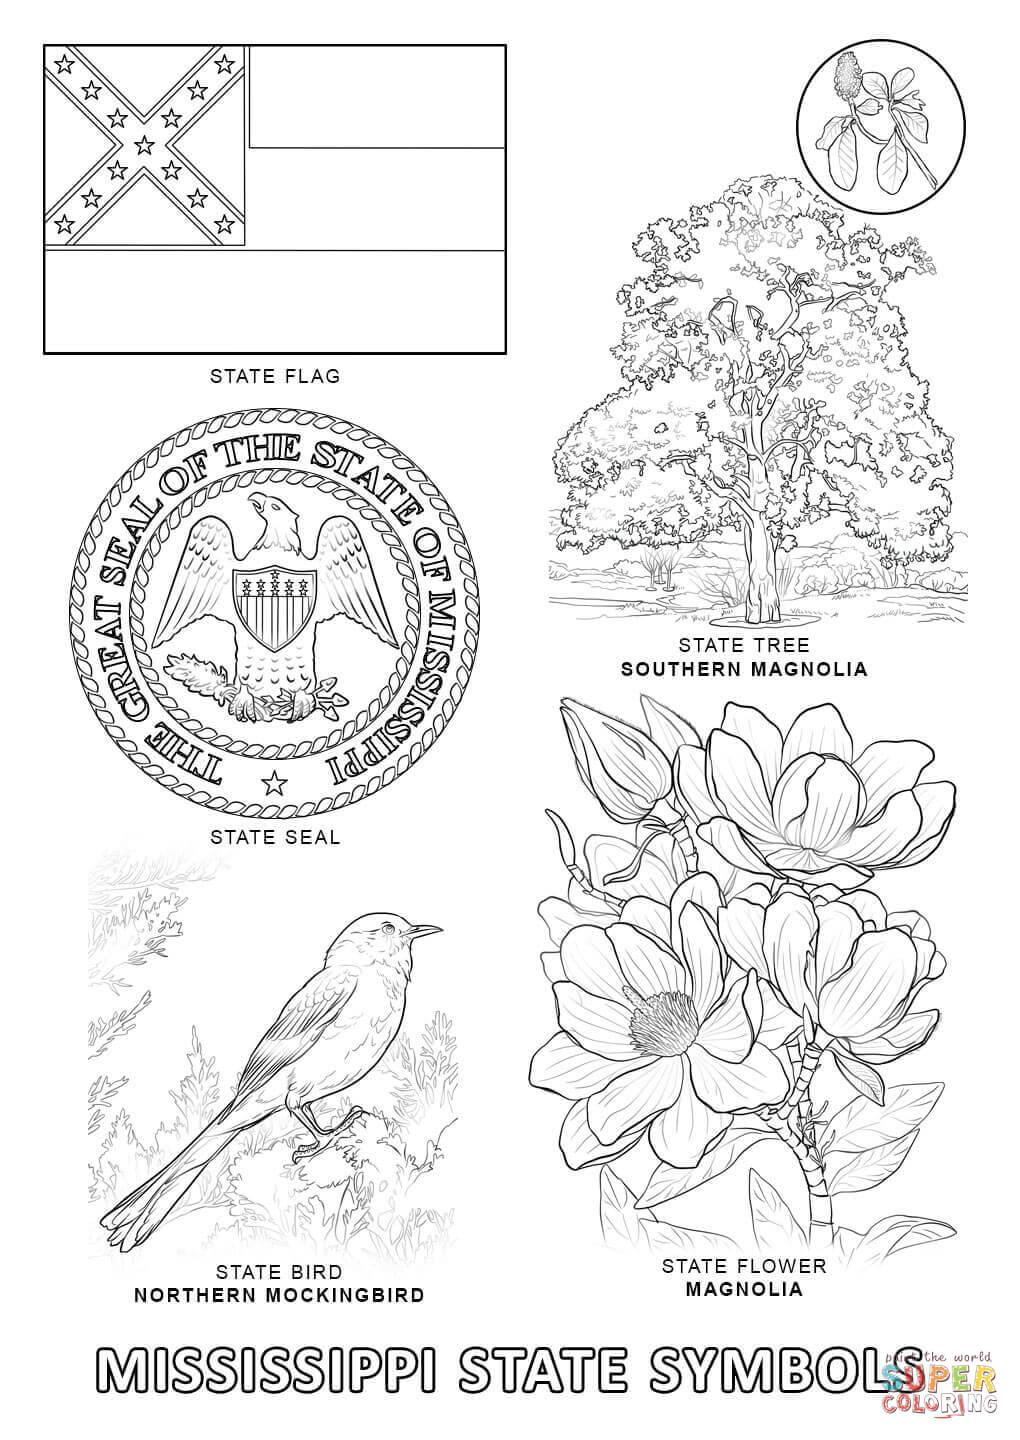 florida state symbols coloring pages 10 florida state symbols coloring pages top free state pages coloring symbols florida